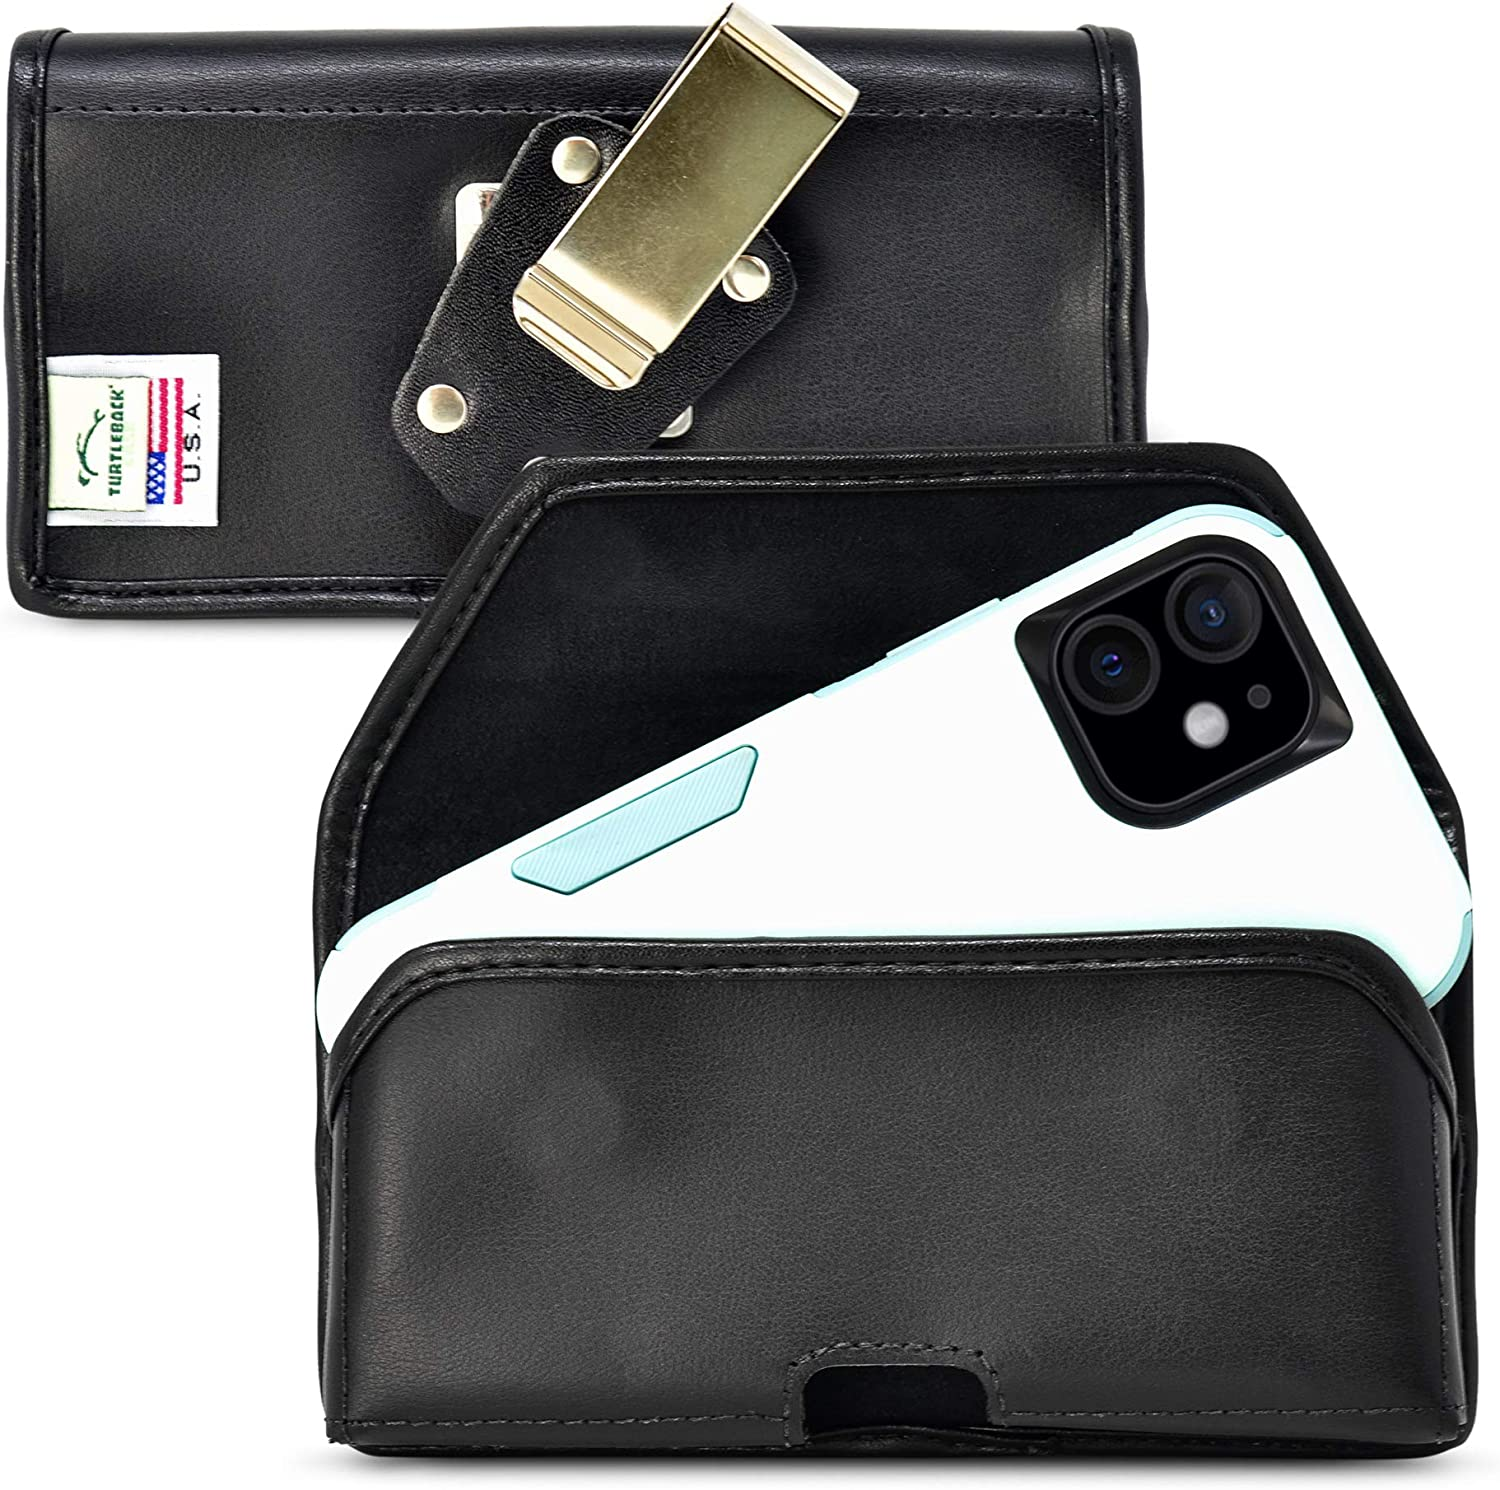 Turtleback Belt Case Designed for iPhone 13 & 13 Pro / 12 & Pro Compatible with Shockproof OB Commuter, Black Leather Holster Pouch with Heavy Duty Rotating Belt Clip, Horizontal Made in USA